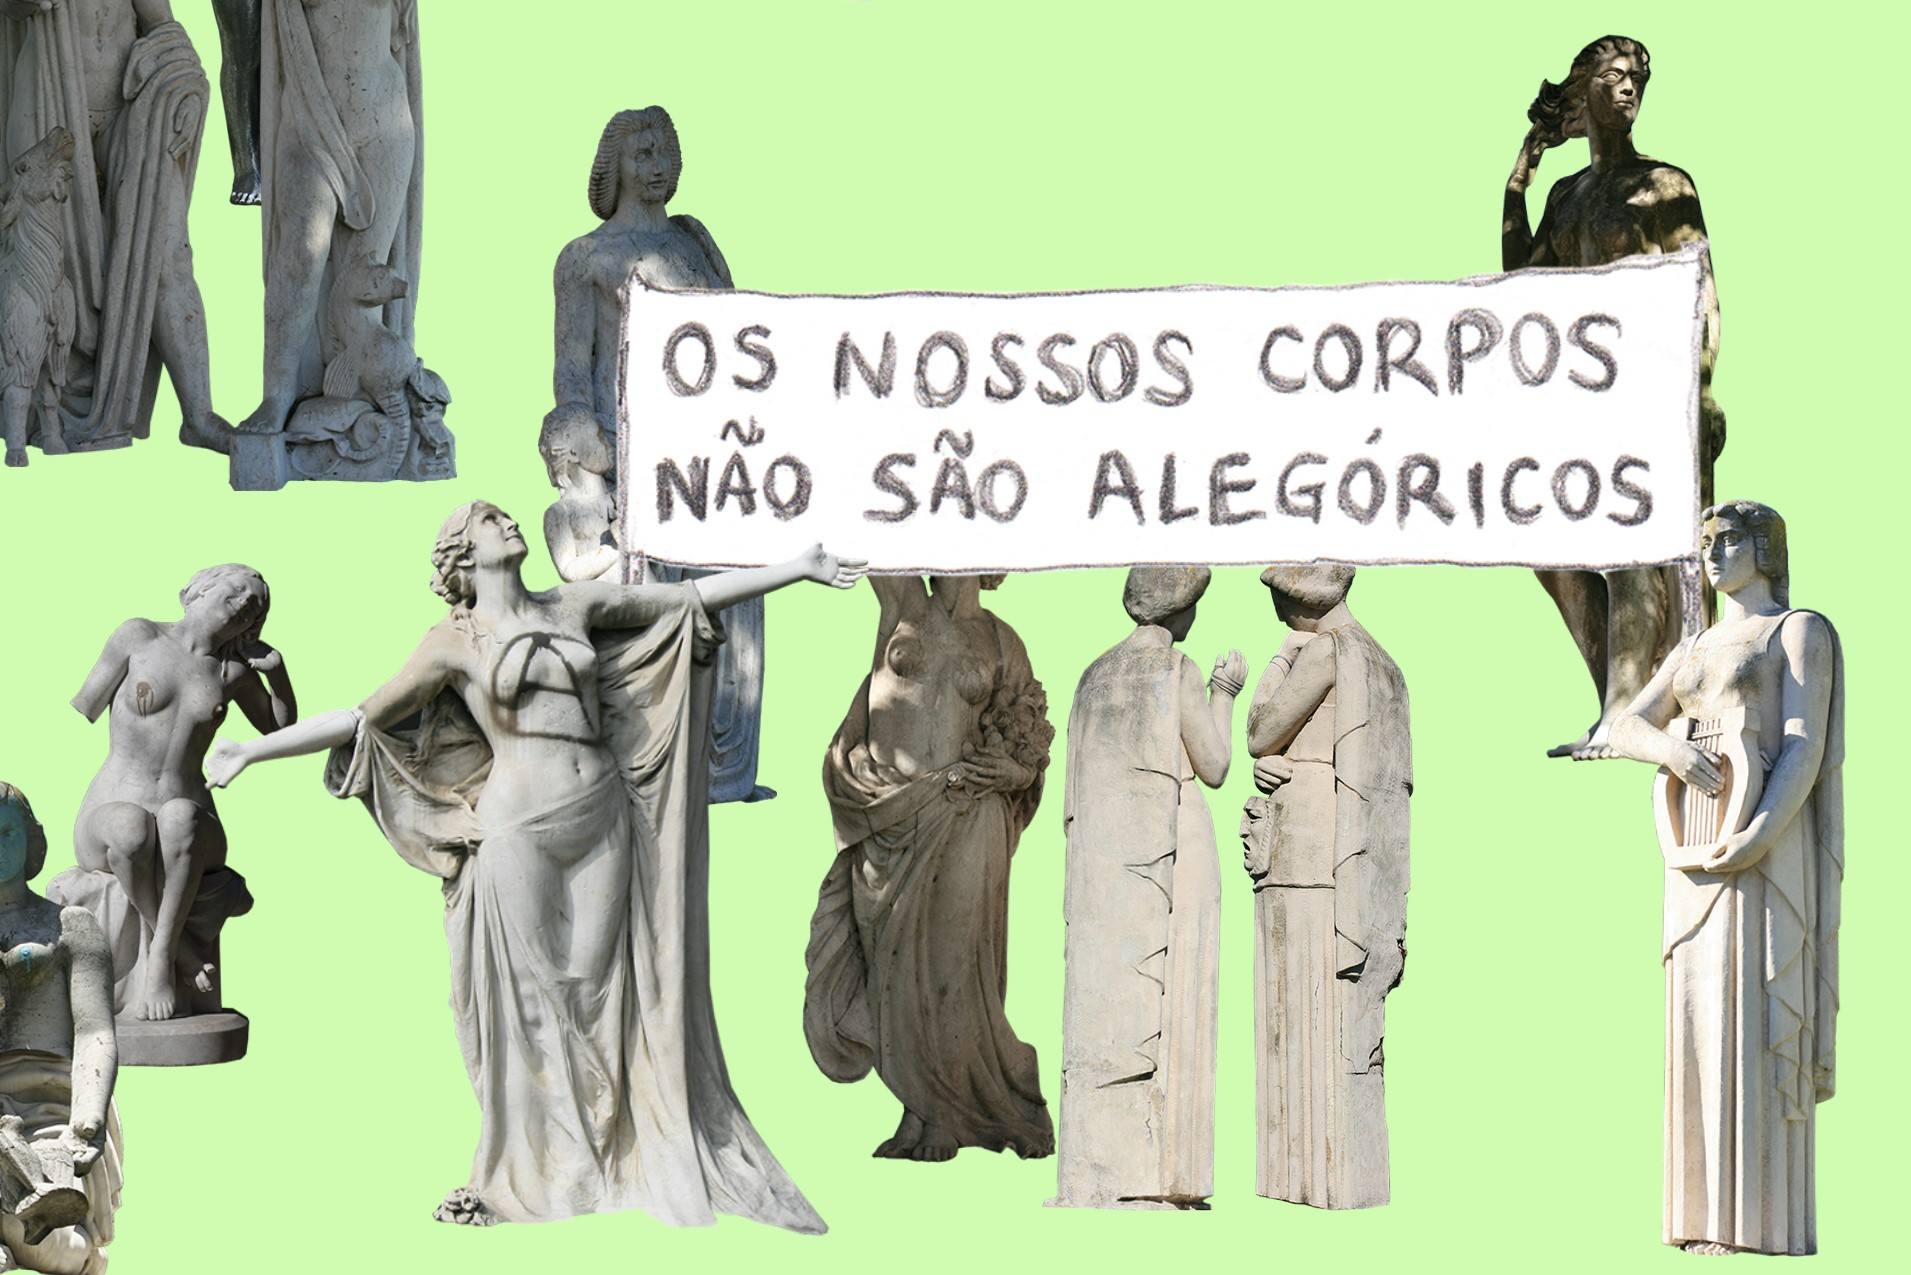 Several statues of nude women at a protest.